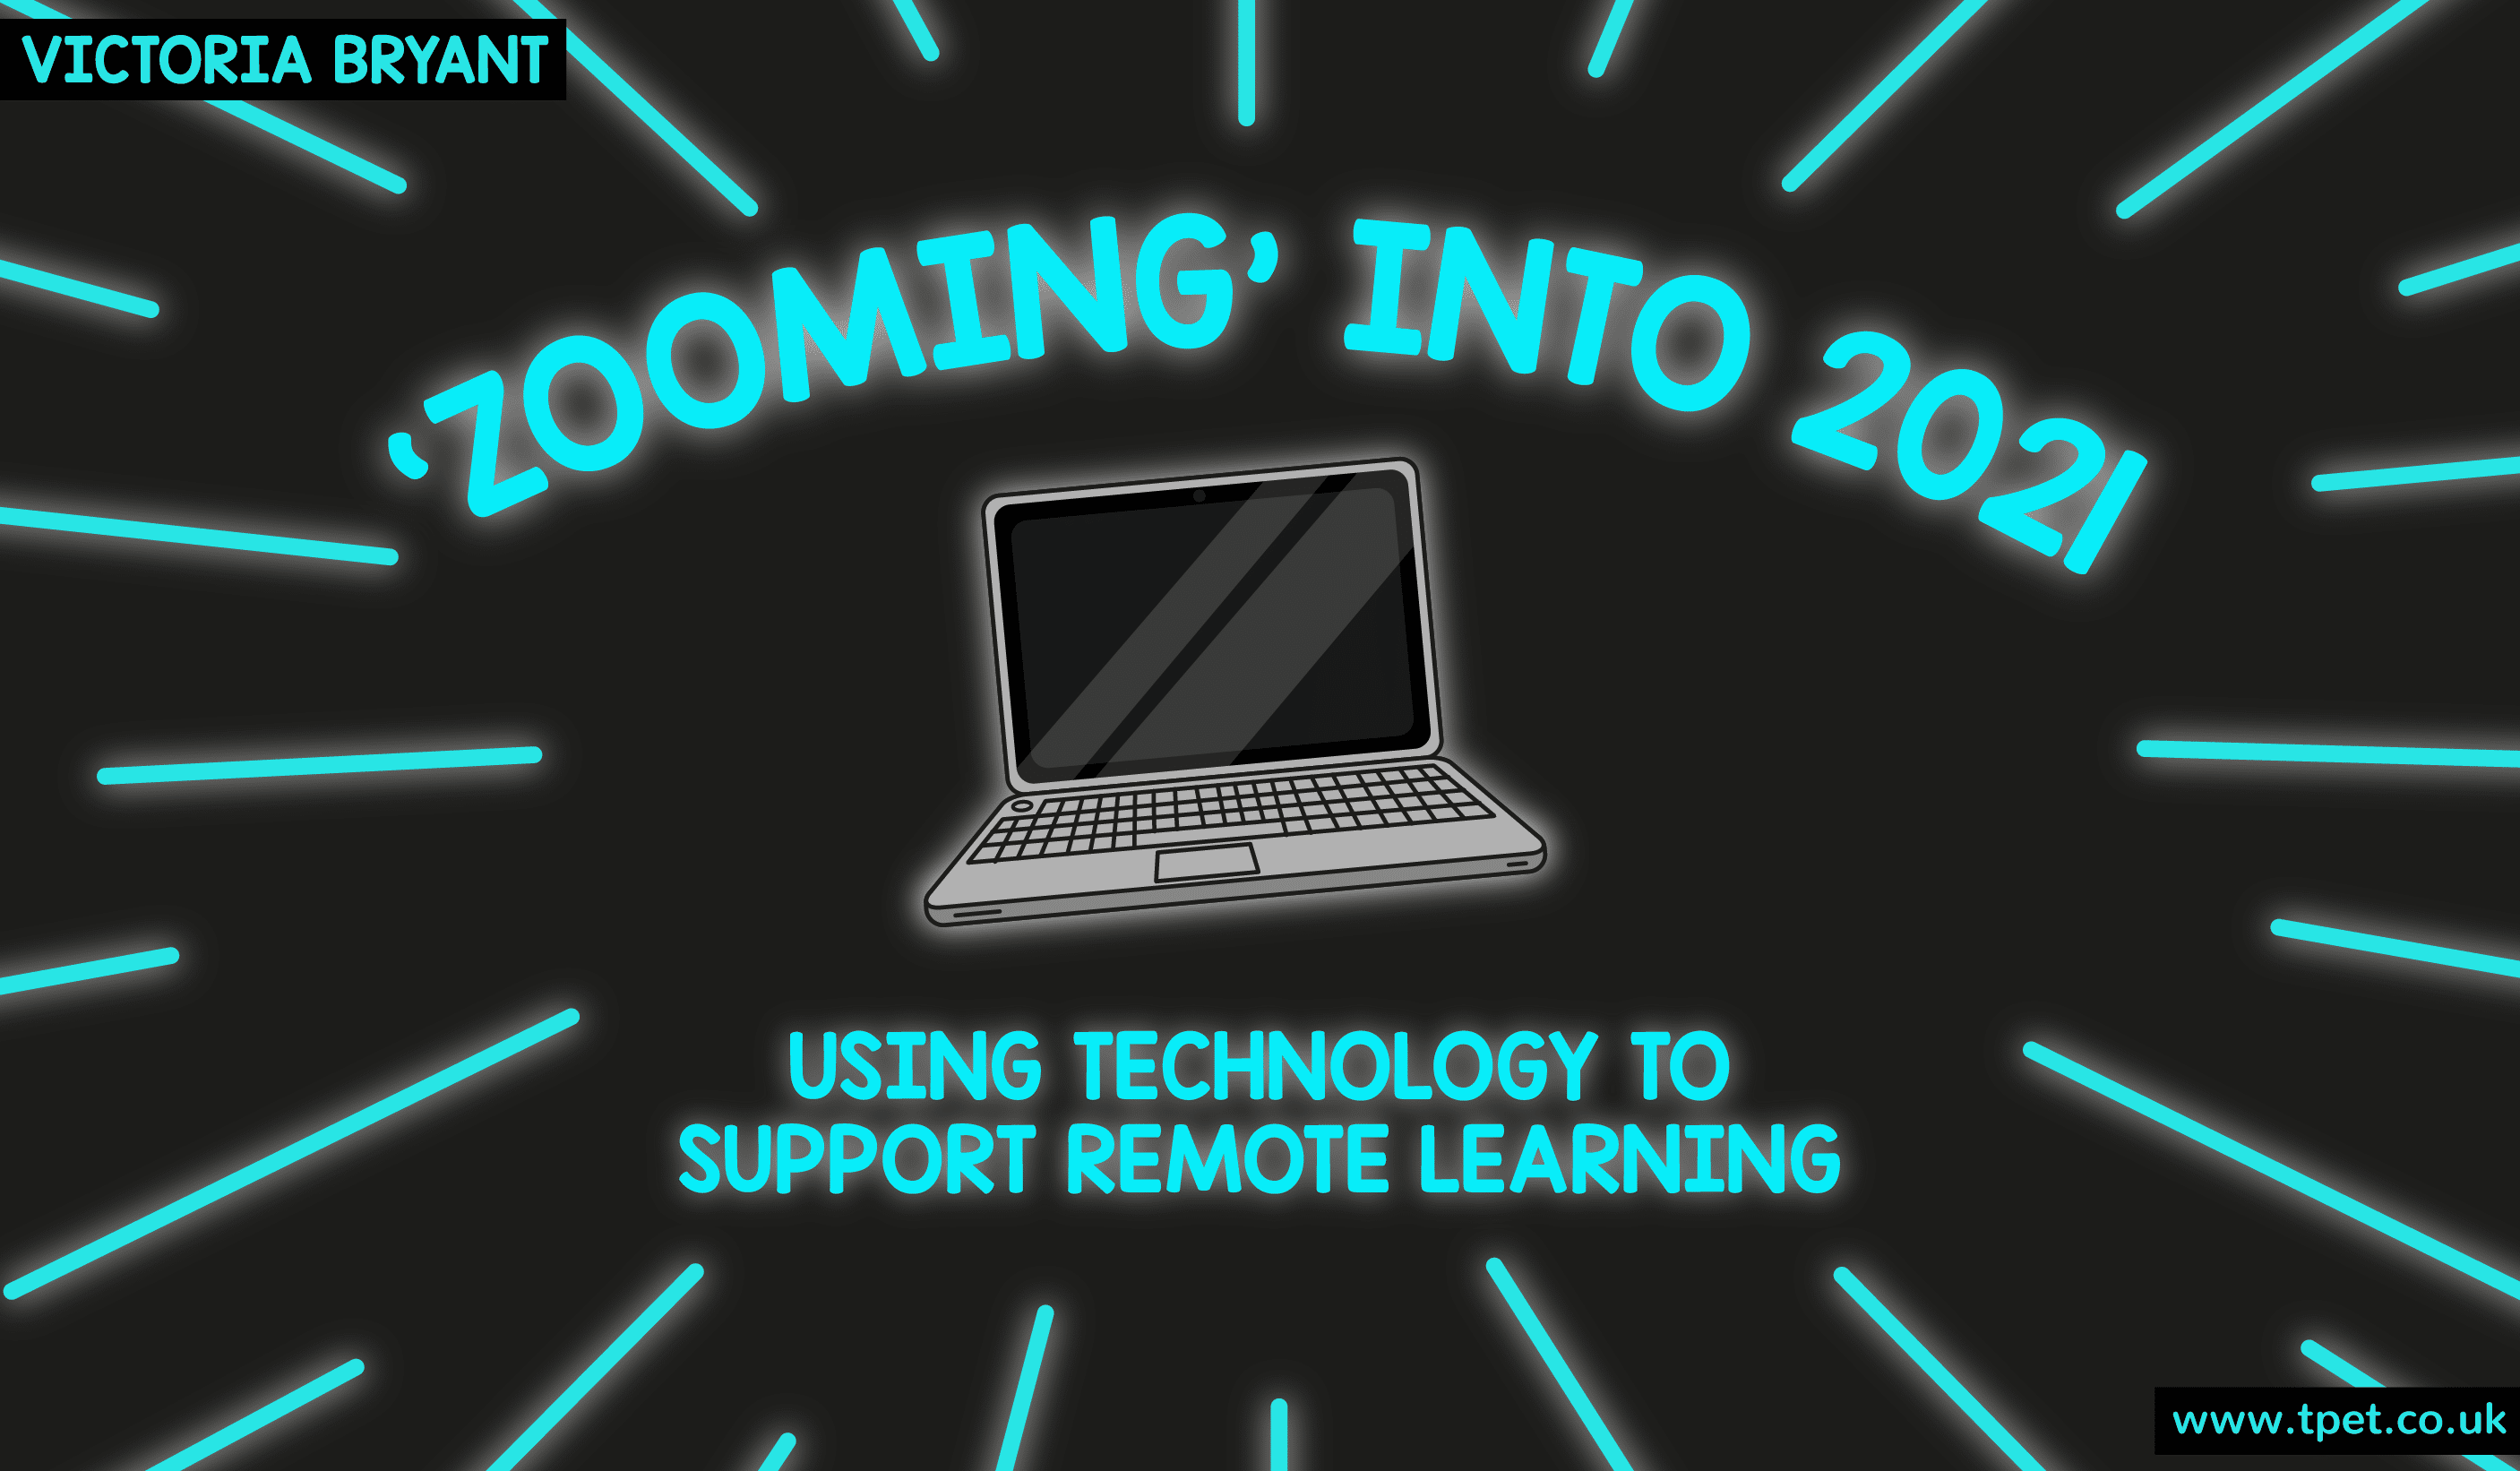 """Zooming"" into 2021 – using technology to support remote learning"